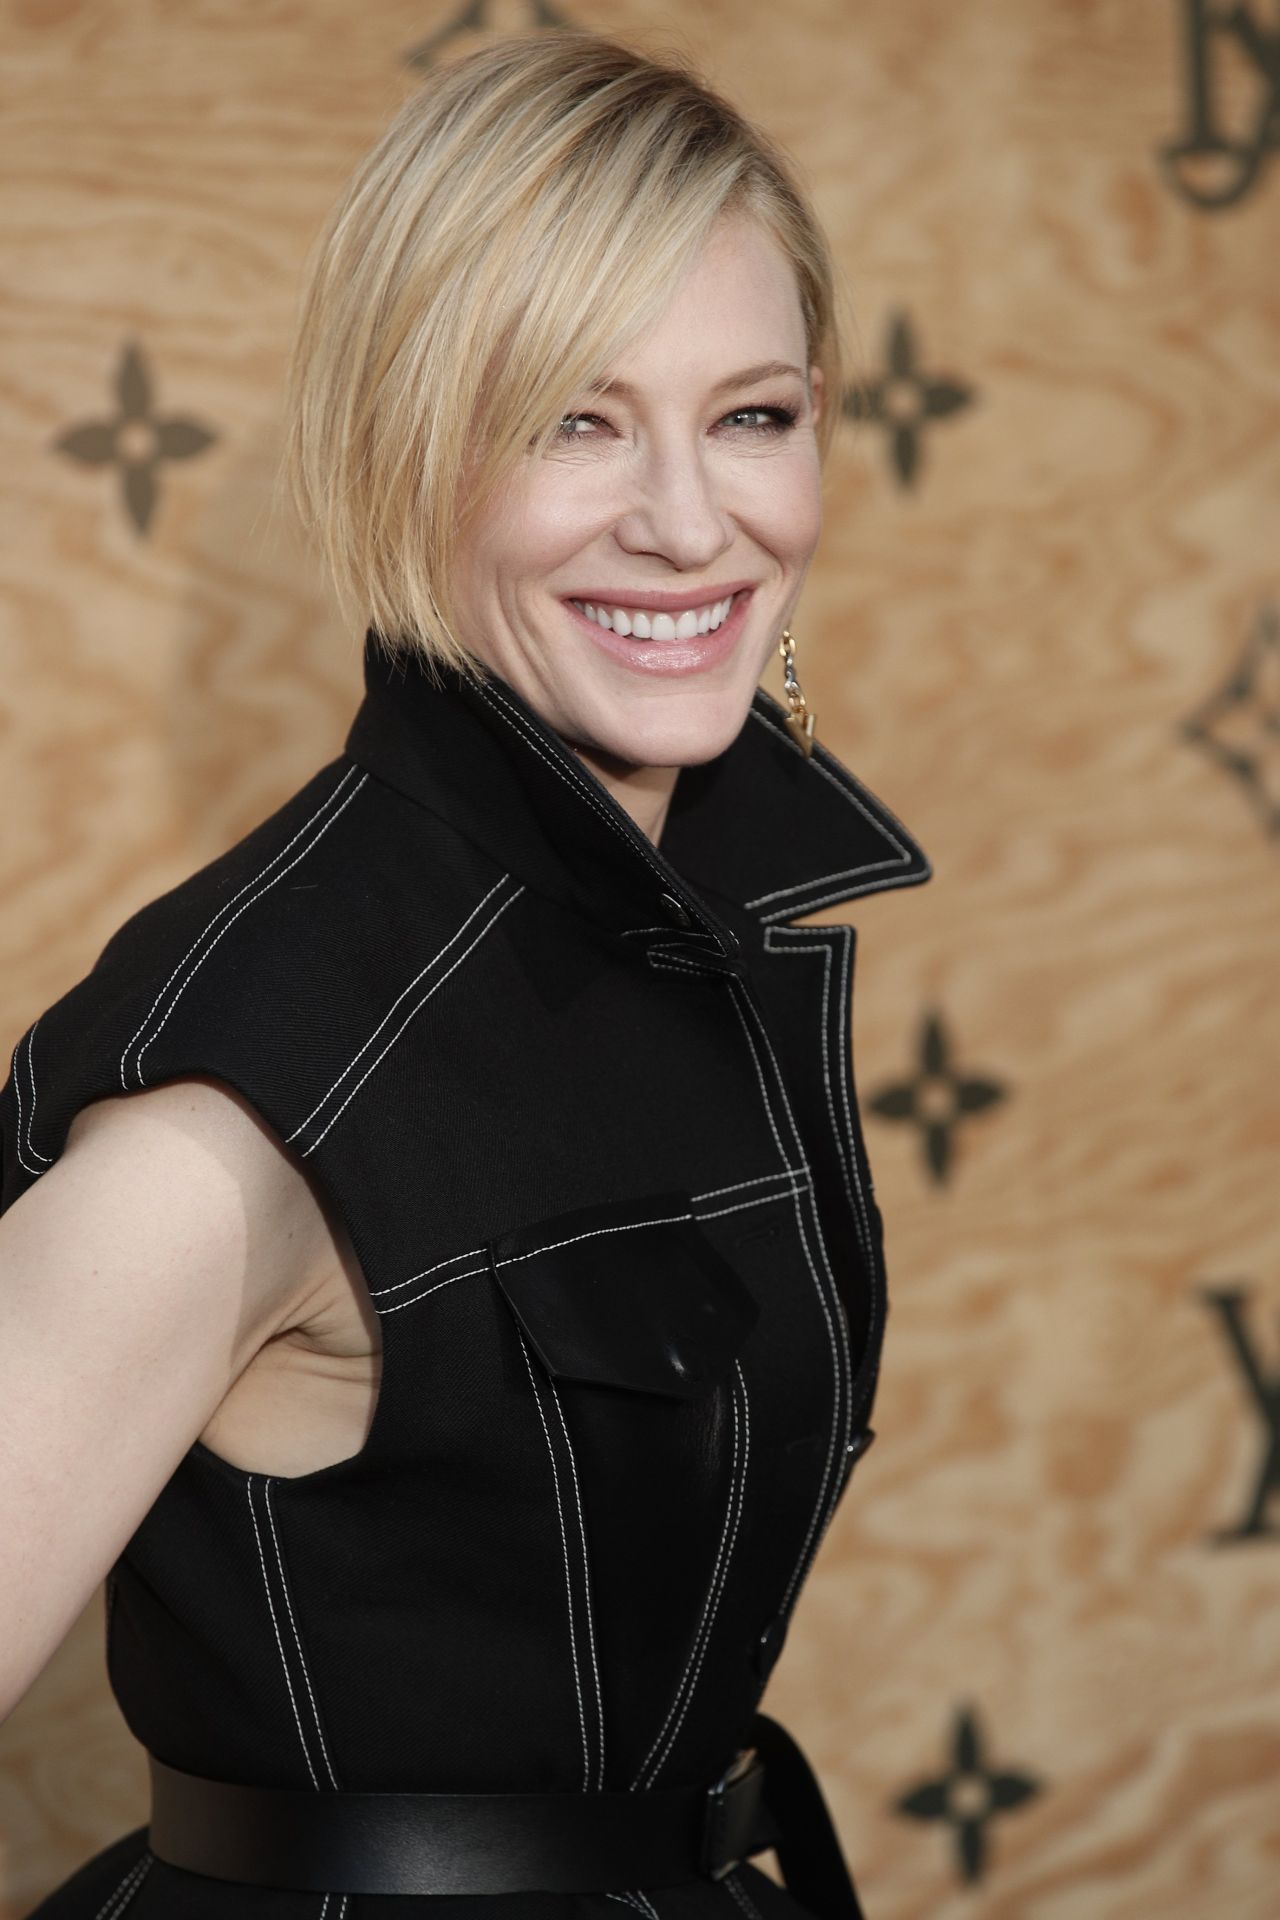 cate blanchett - photo #37